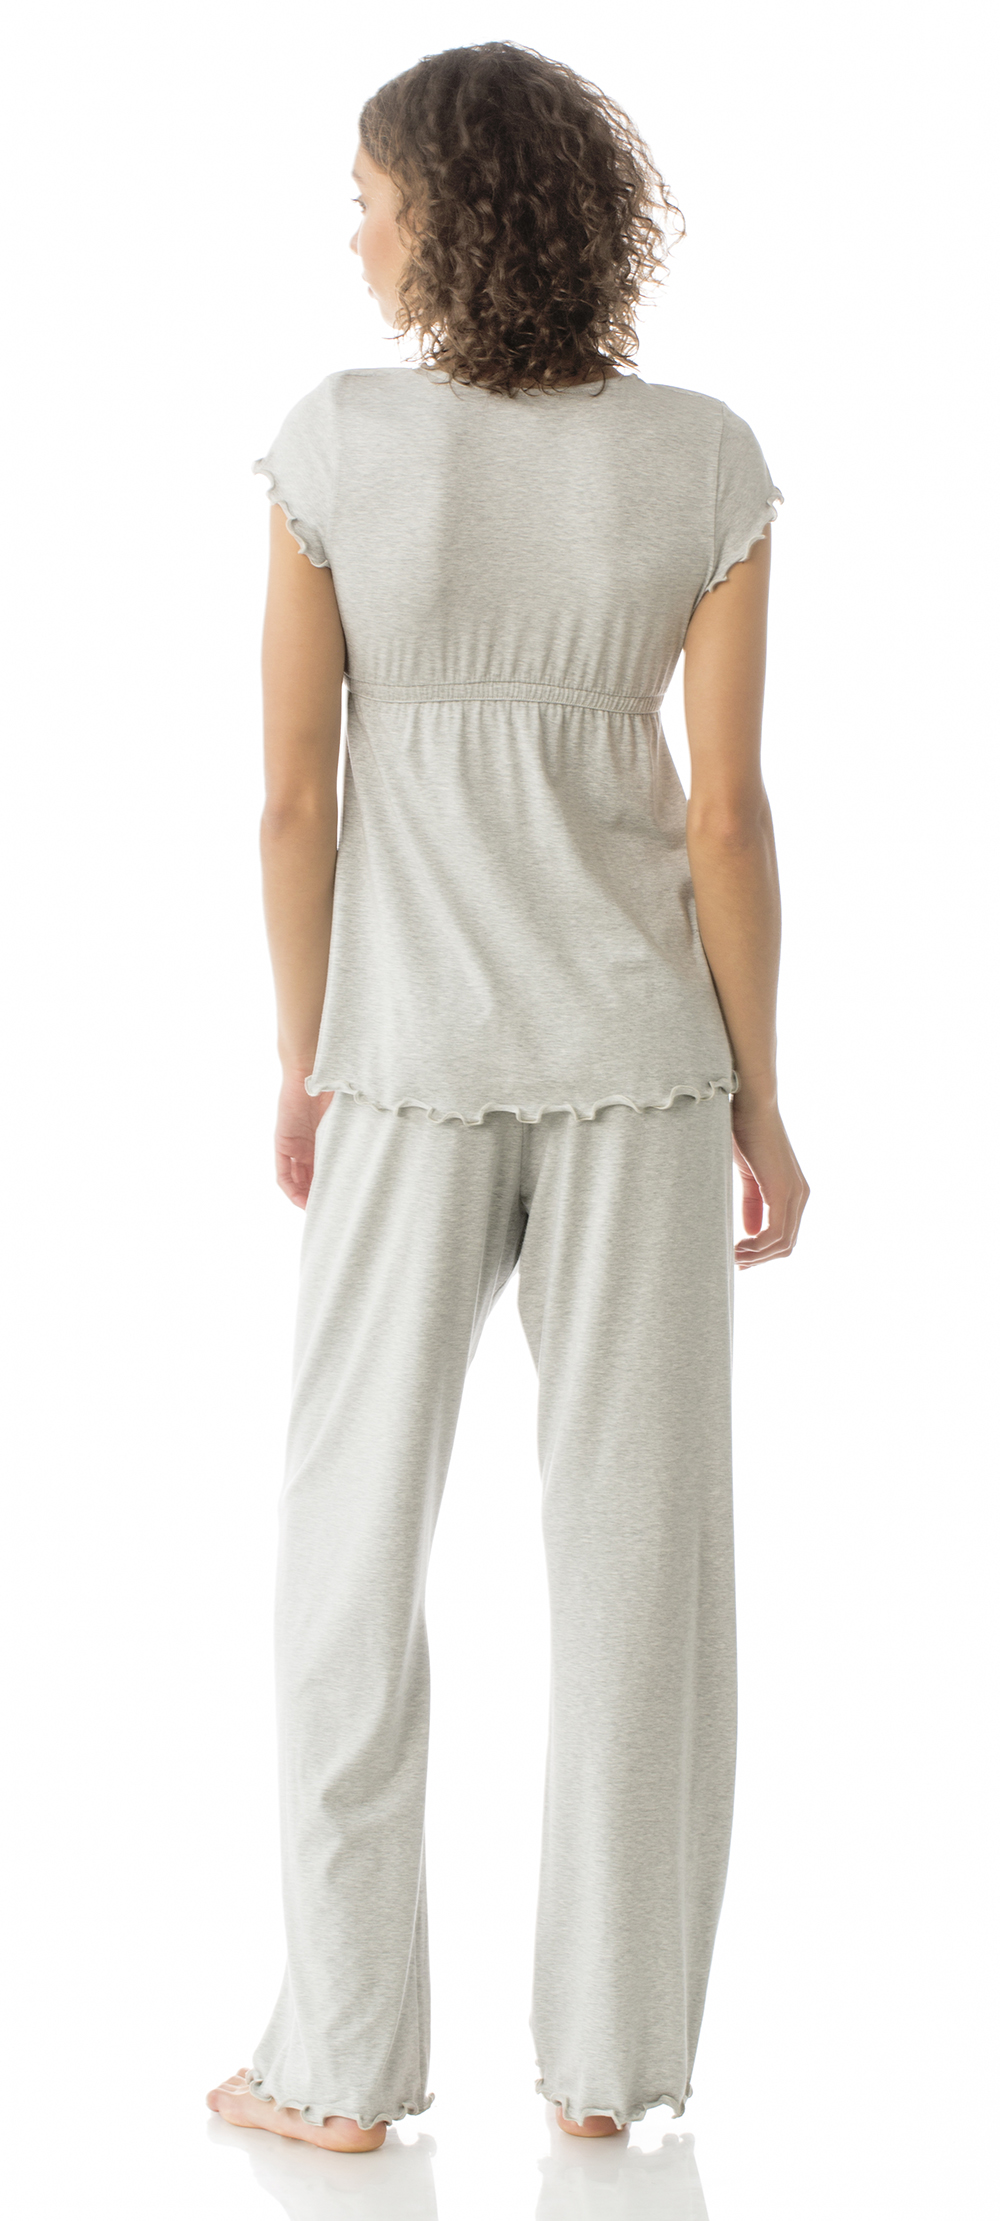 majamas-genna-nursing-pjs-pebble-back